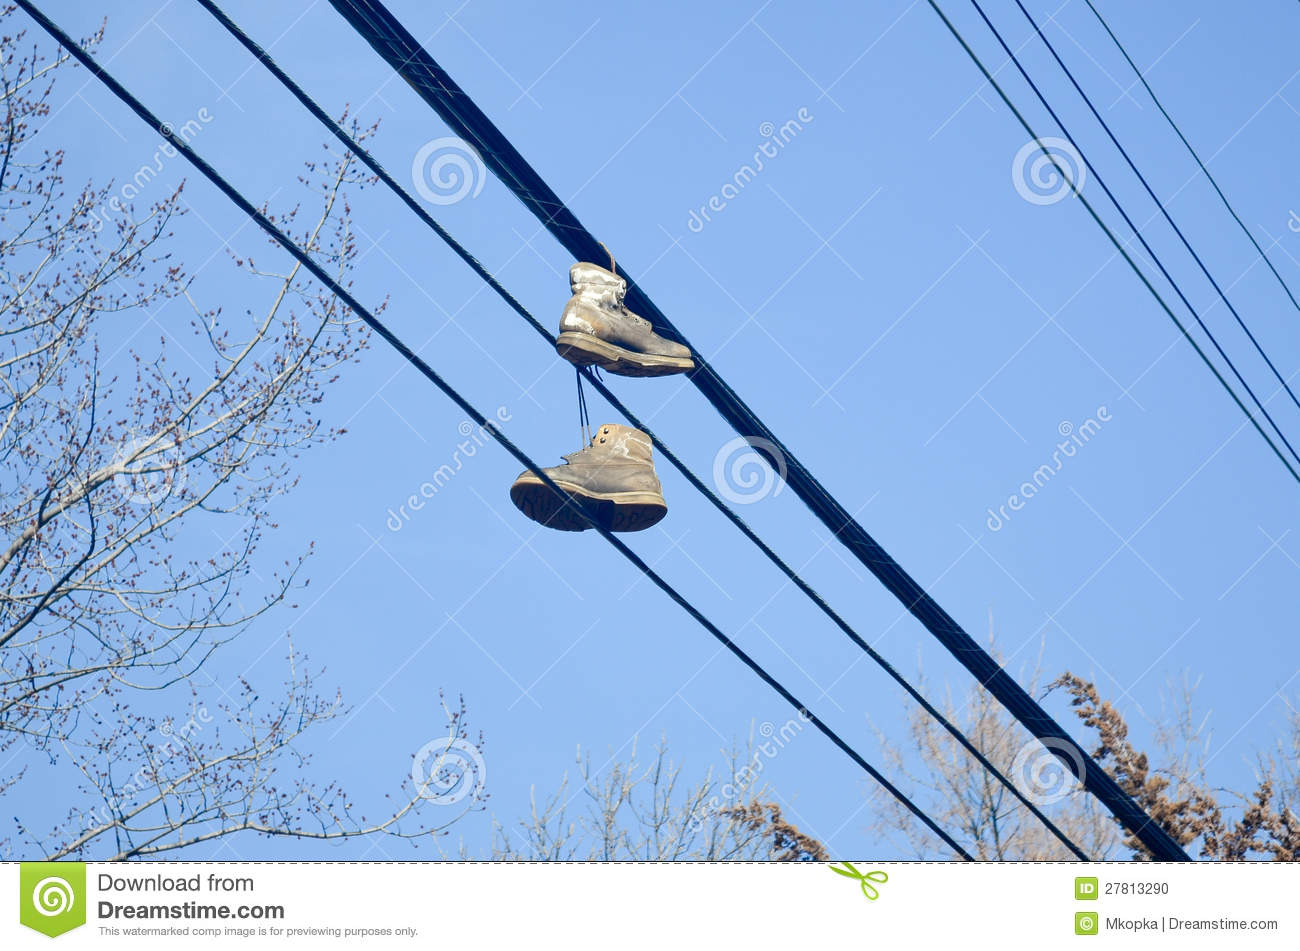 Shoes on power lines - urban scene, worn tennis shoes hanging from a